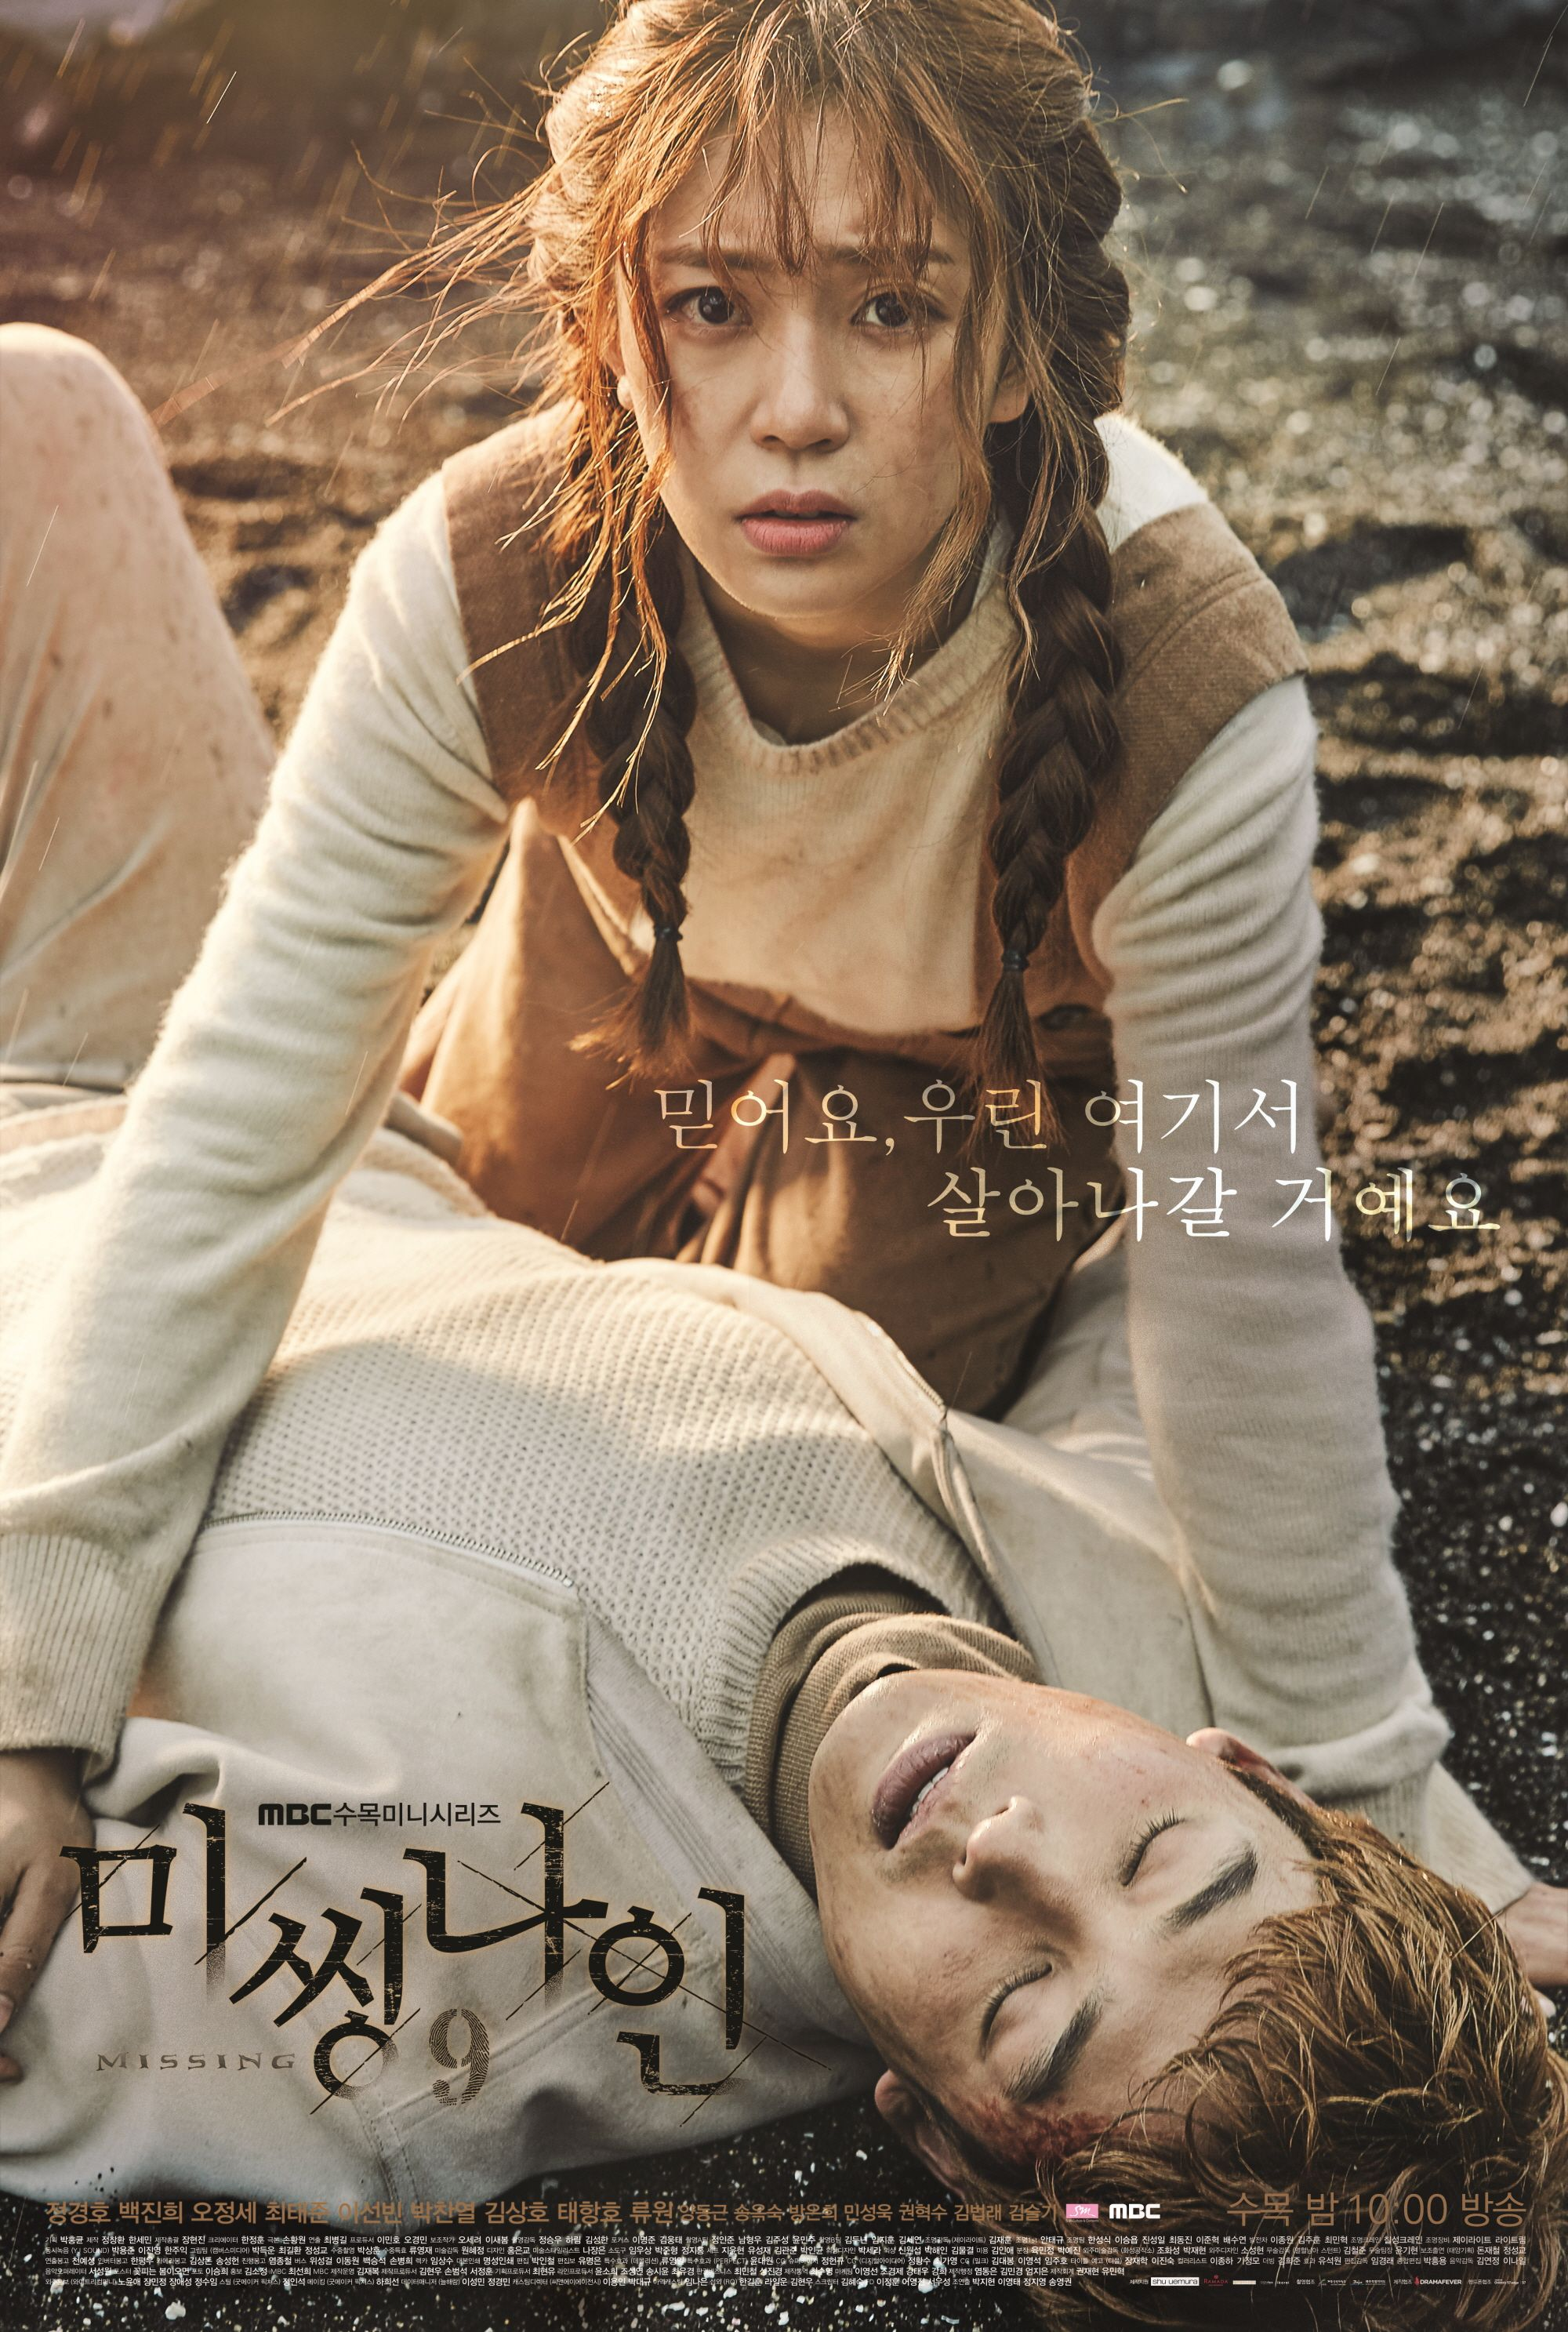 Missing Nine, a.k.a. Missing 9 (South Korea, 2017; MBC). Starring Jung Kyung-ho, Baek Jin-hee, Oh Jung-se, Choi Tae-joon, Lee Sun-bin, Park Chan-yeol, ...